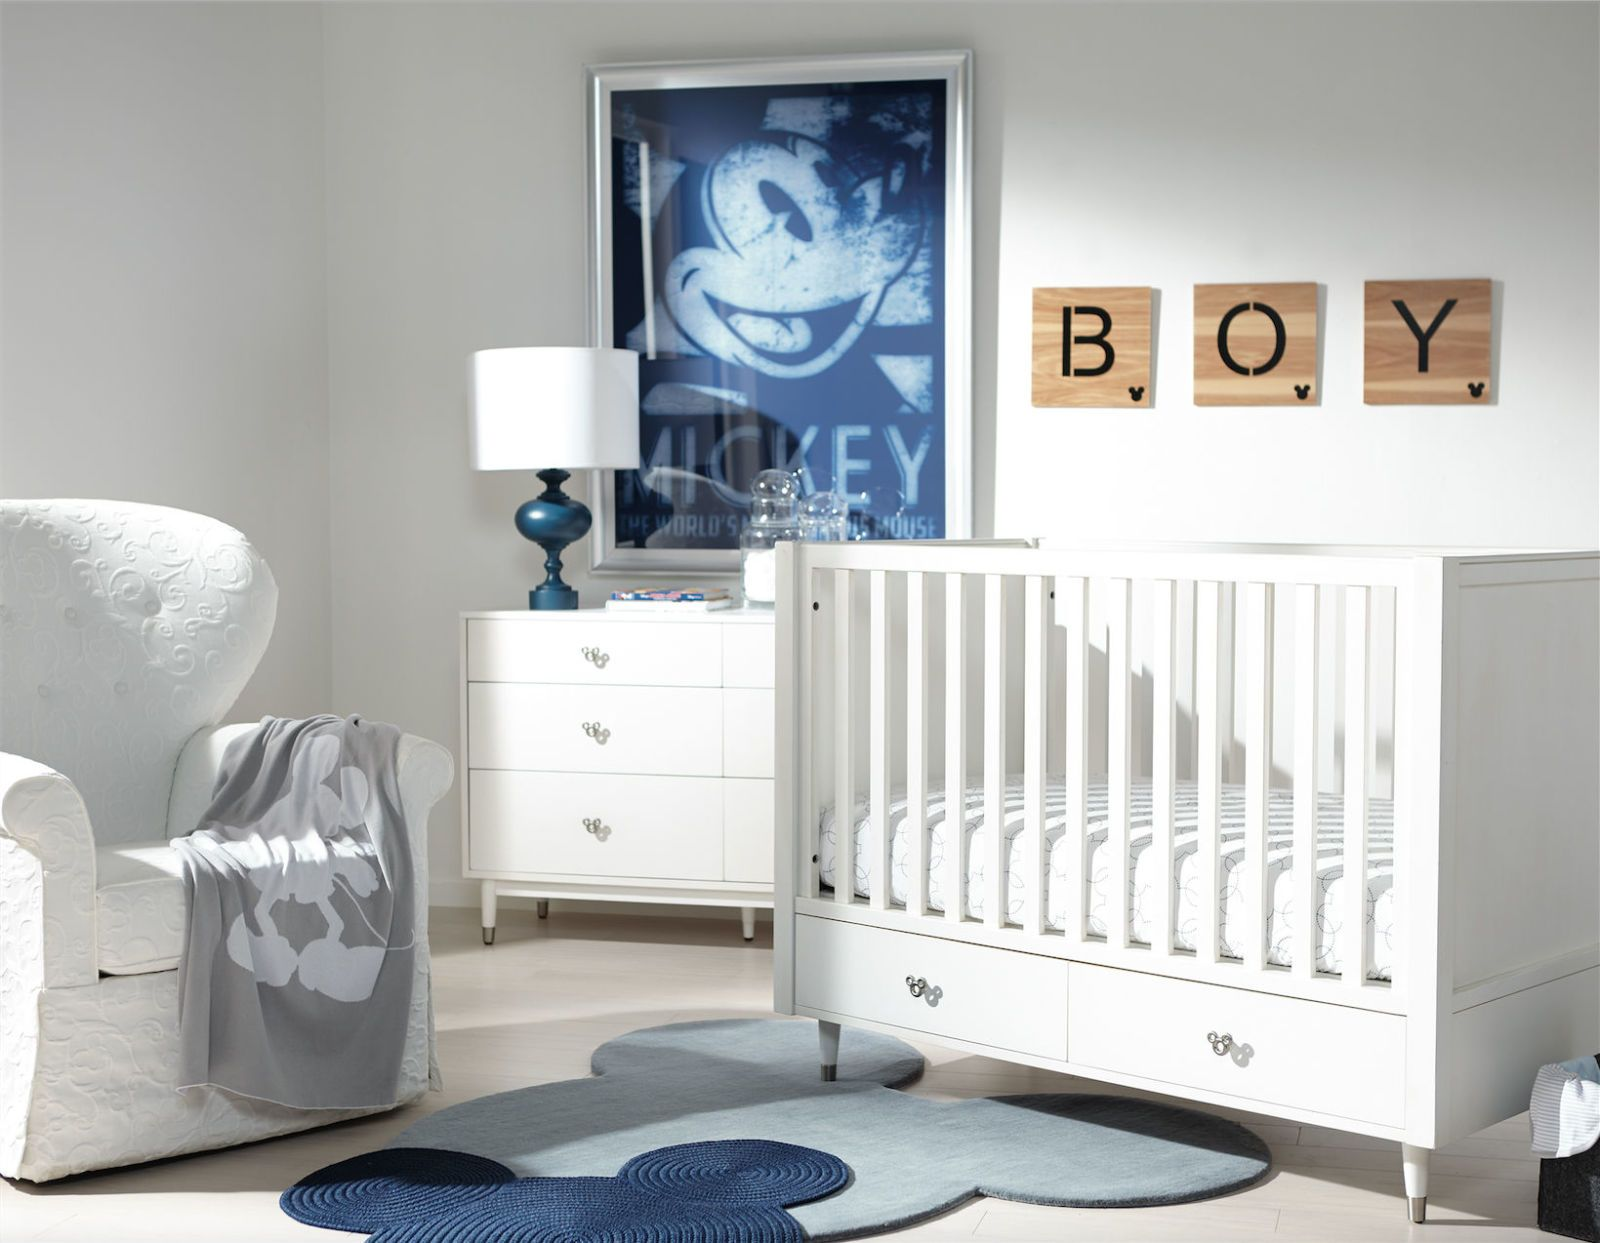 Ethan Allen Just Launched An Adorable Disney Nursery Collection